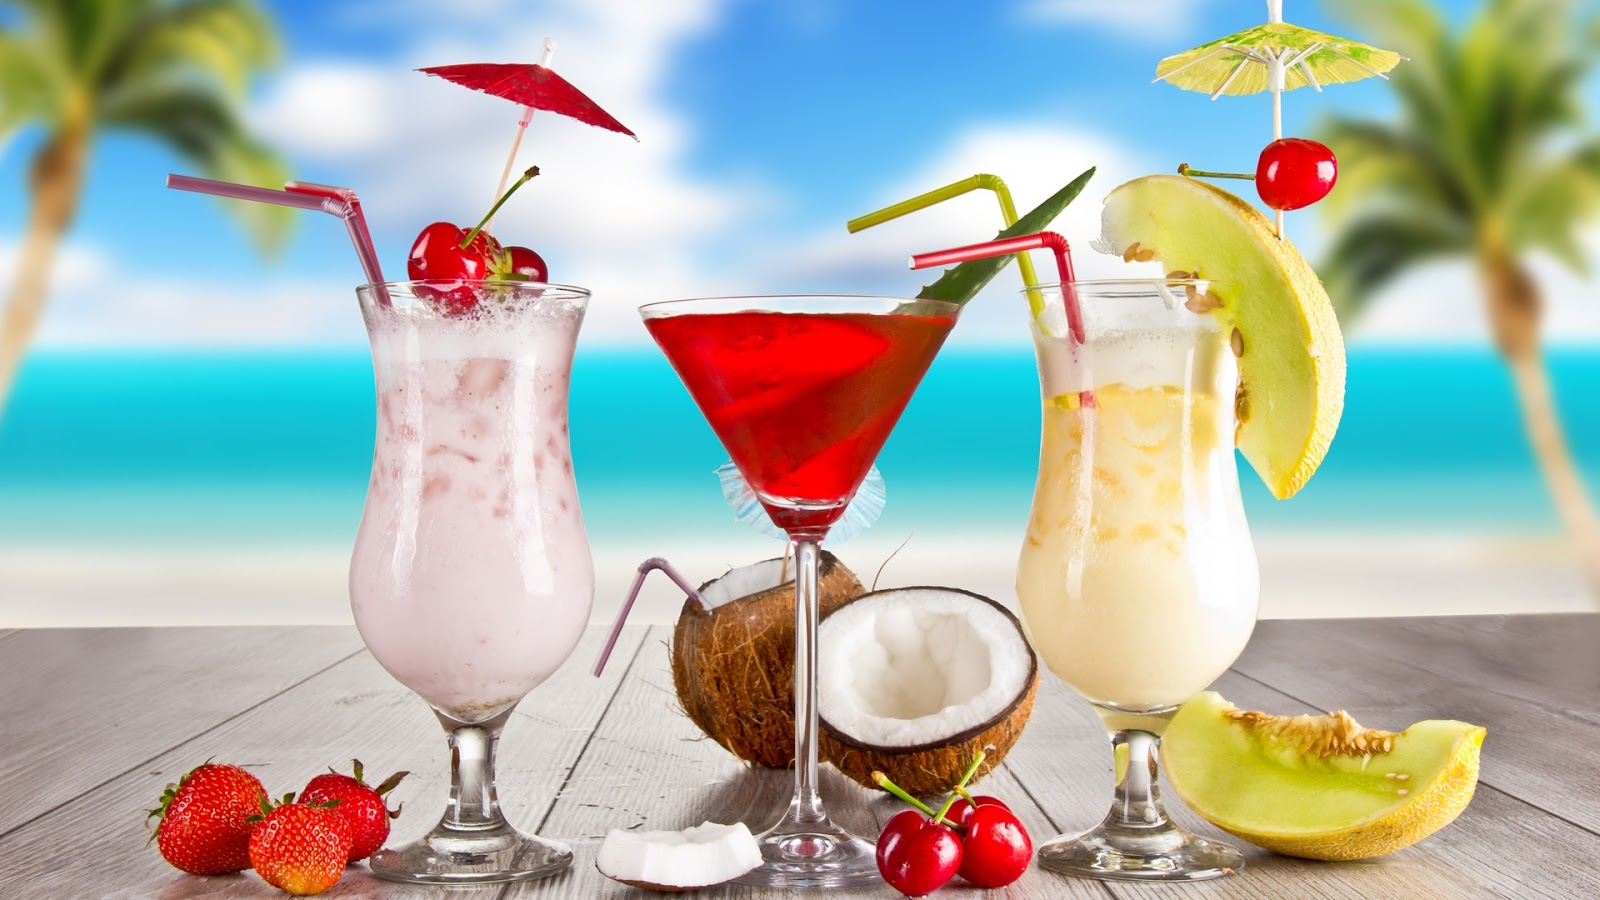 Tropical Cocktail Beach Drink HDQ Wallpapers 1600x900